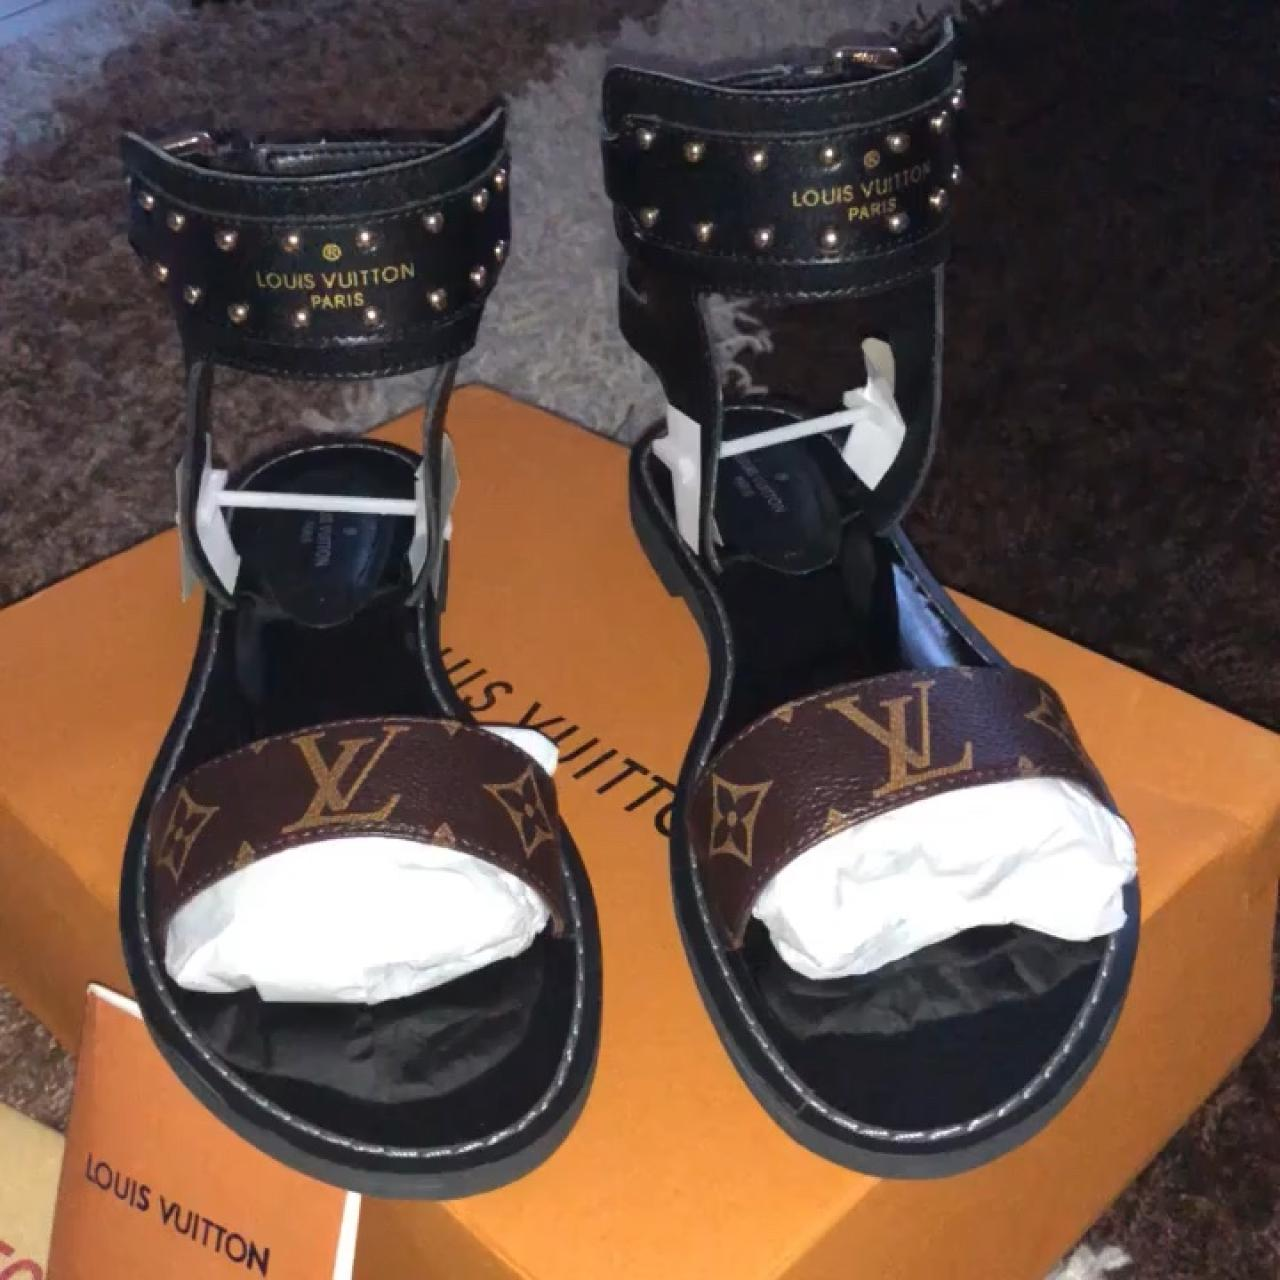 942d1afa01f7 Louis Vuitton Nomad Sandal REP. They are JUST as beautiful a - Depop